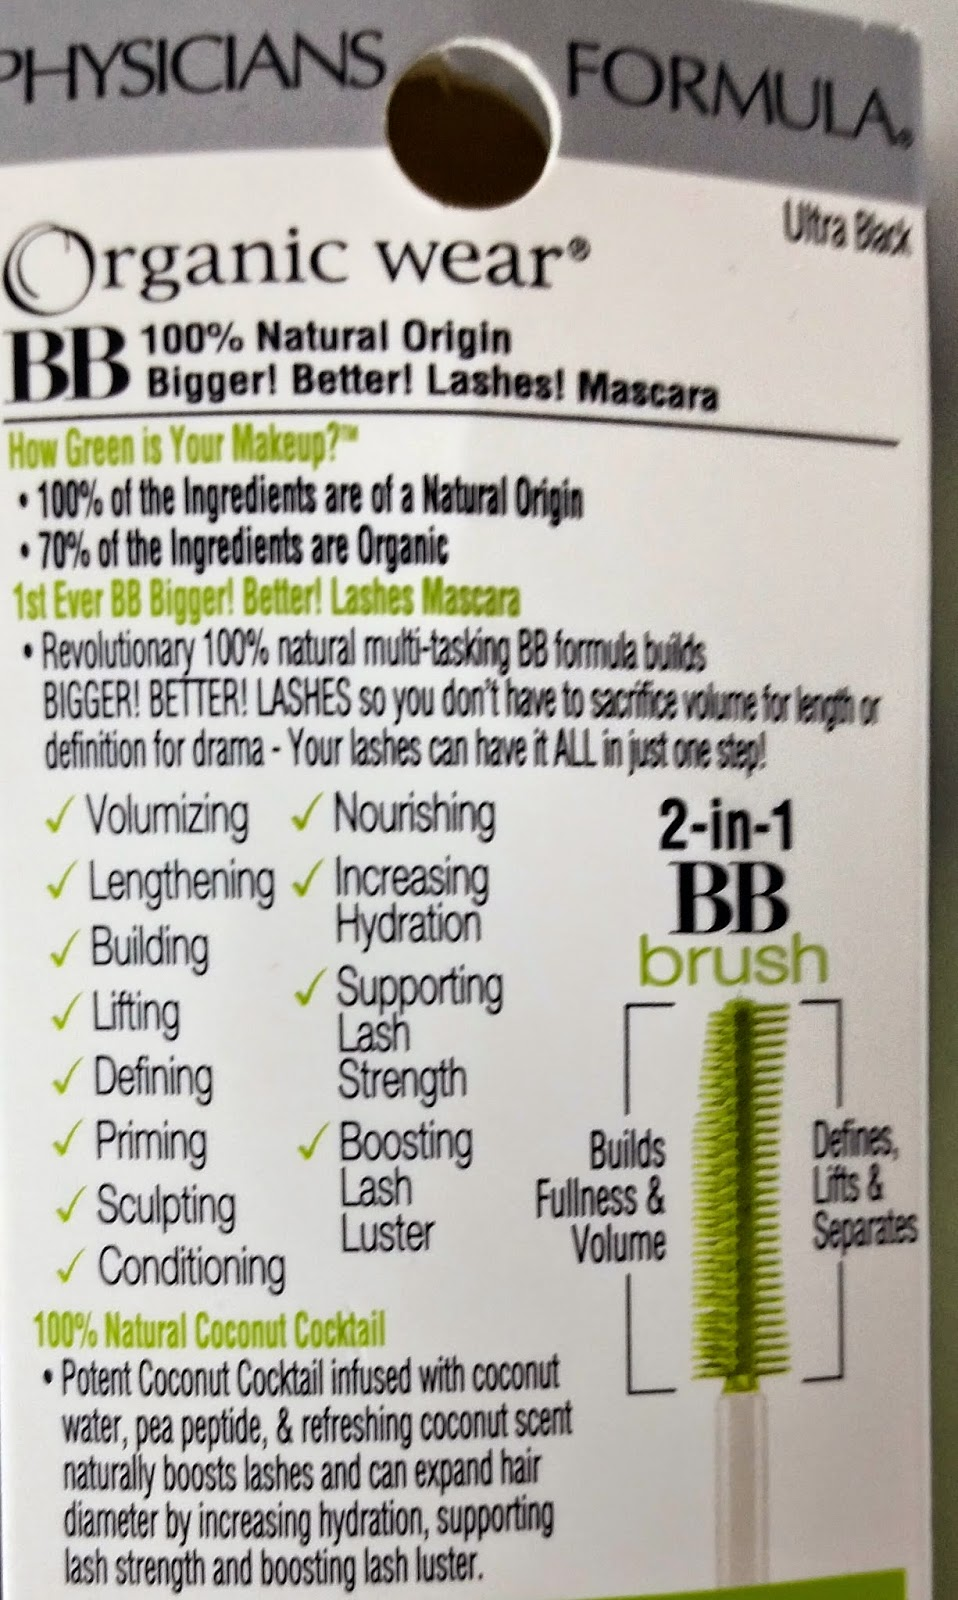 Physicians formula organic wear bb mascara review the budget heres a chart of whats in regular mascaras as opposed to the organic wear bb mascara formula nvjuhfo Images